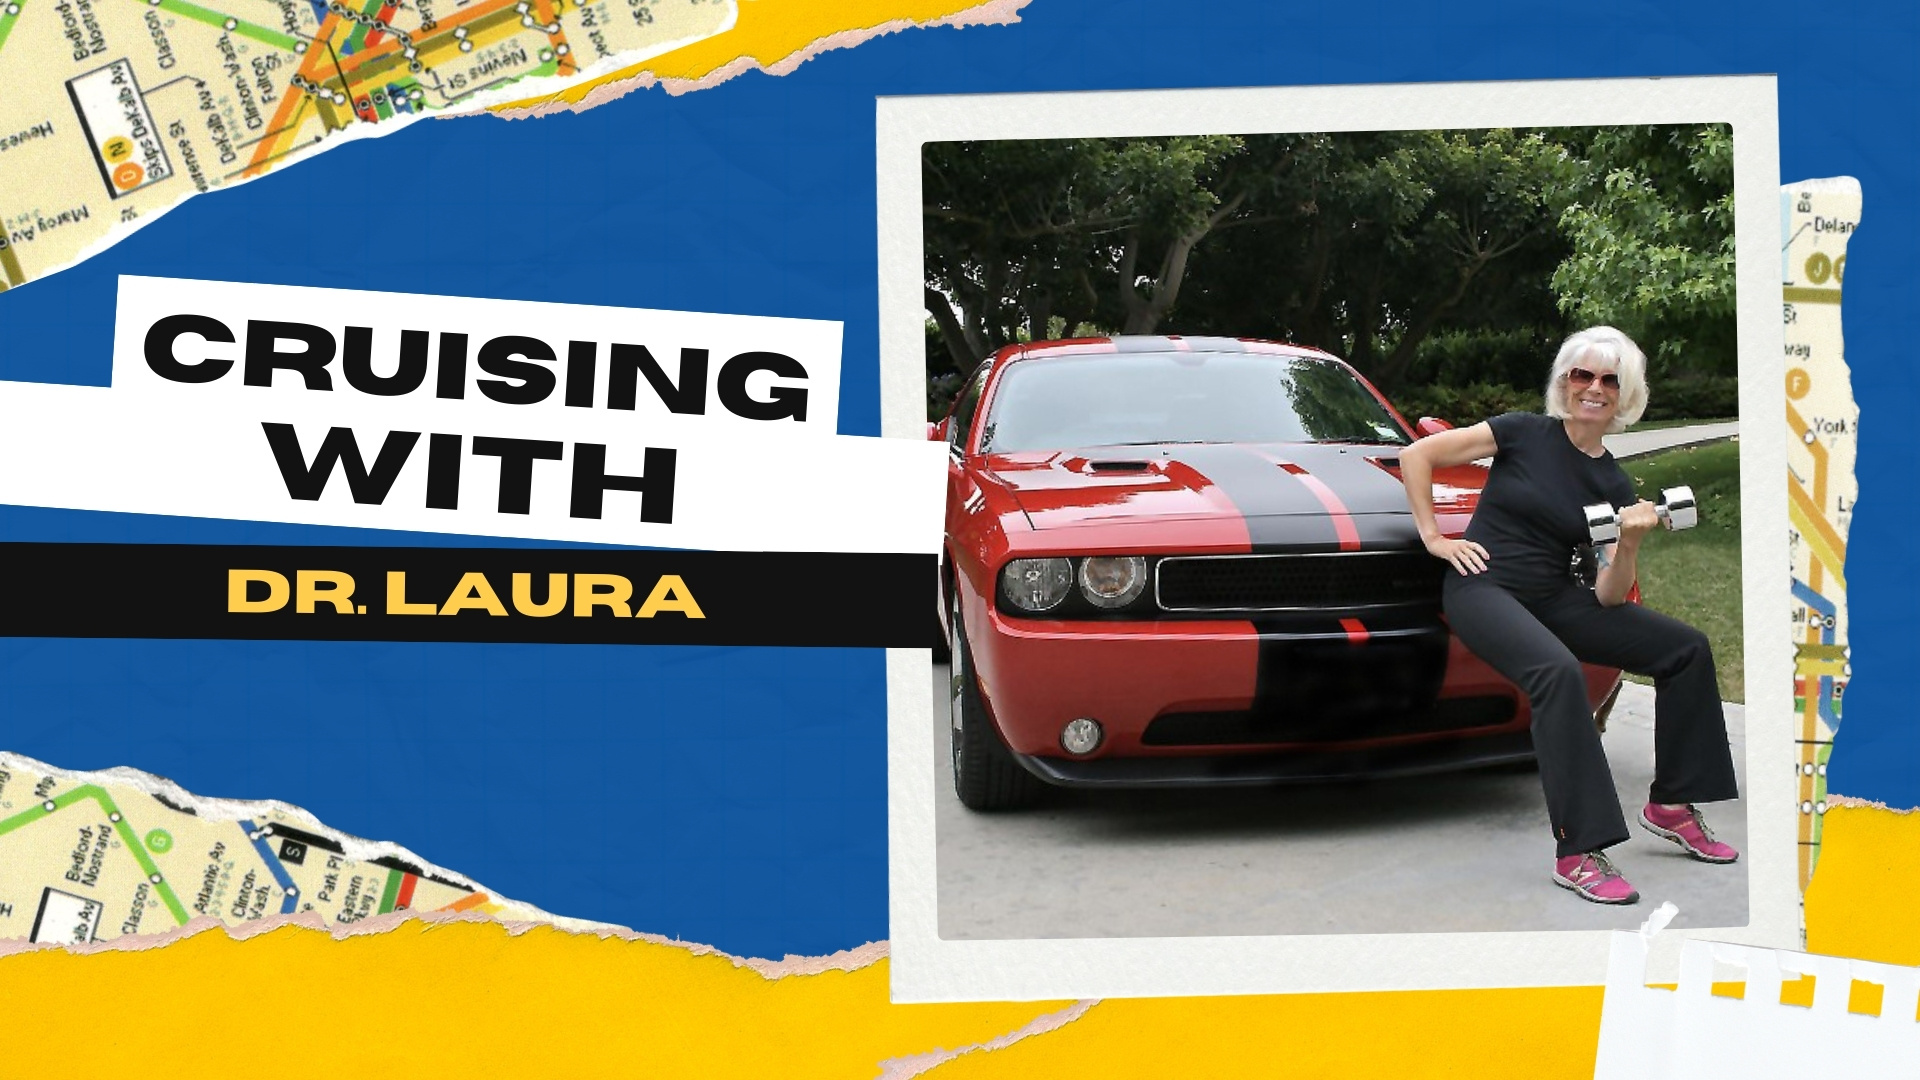 YouTube: Cruising with Dr. Laura